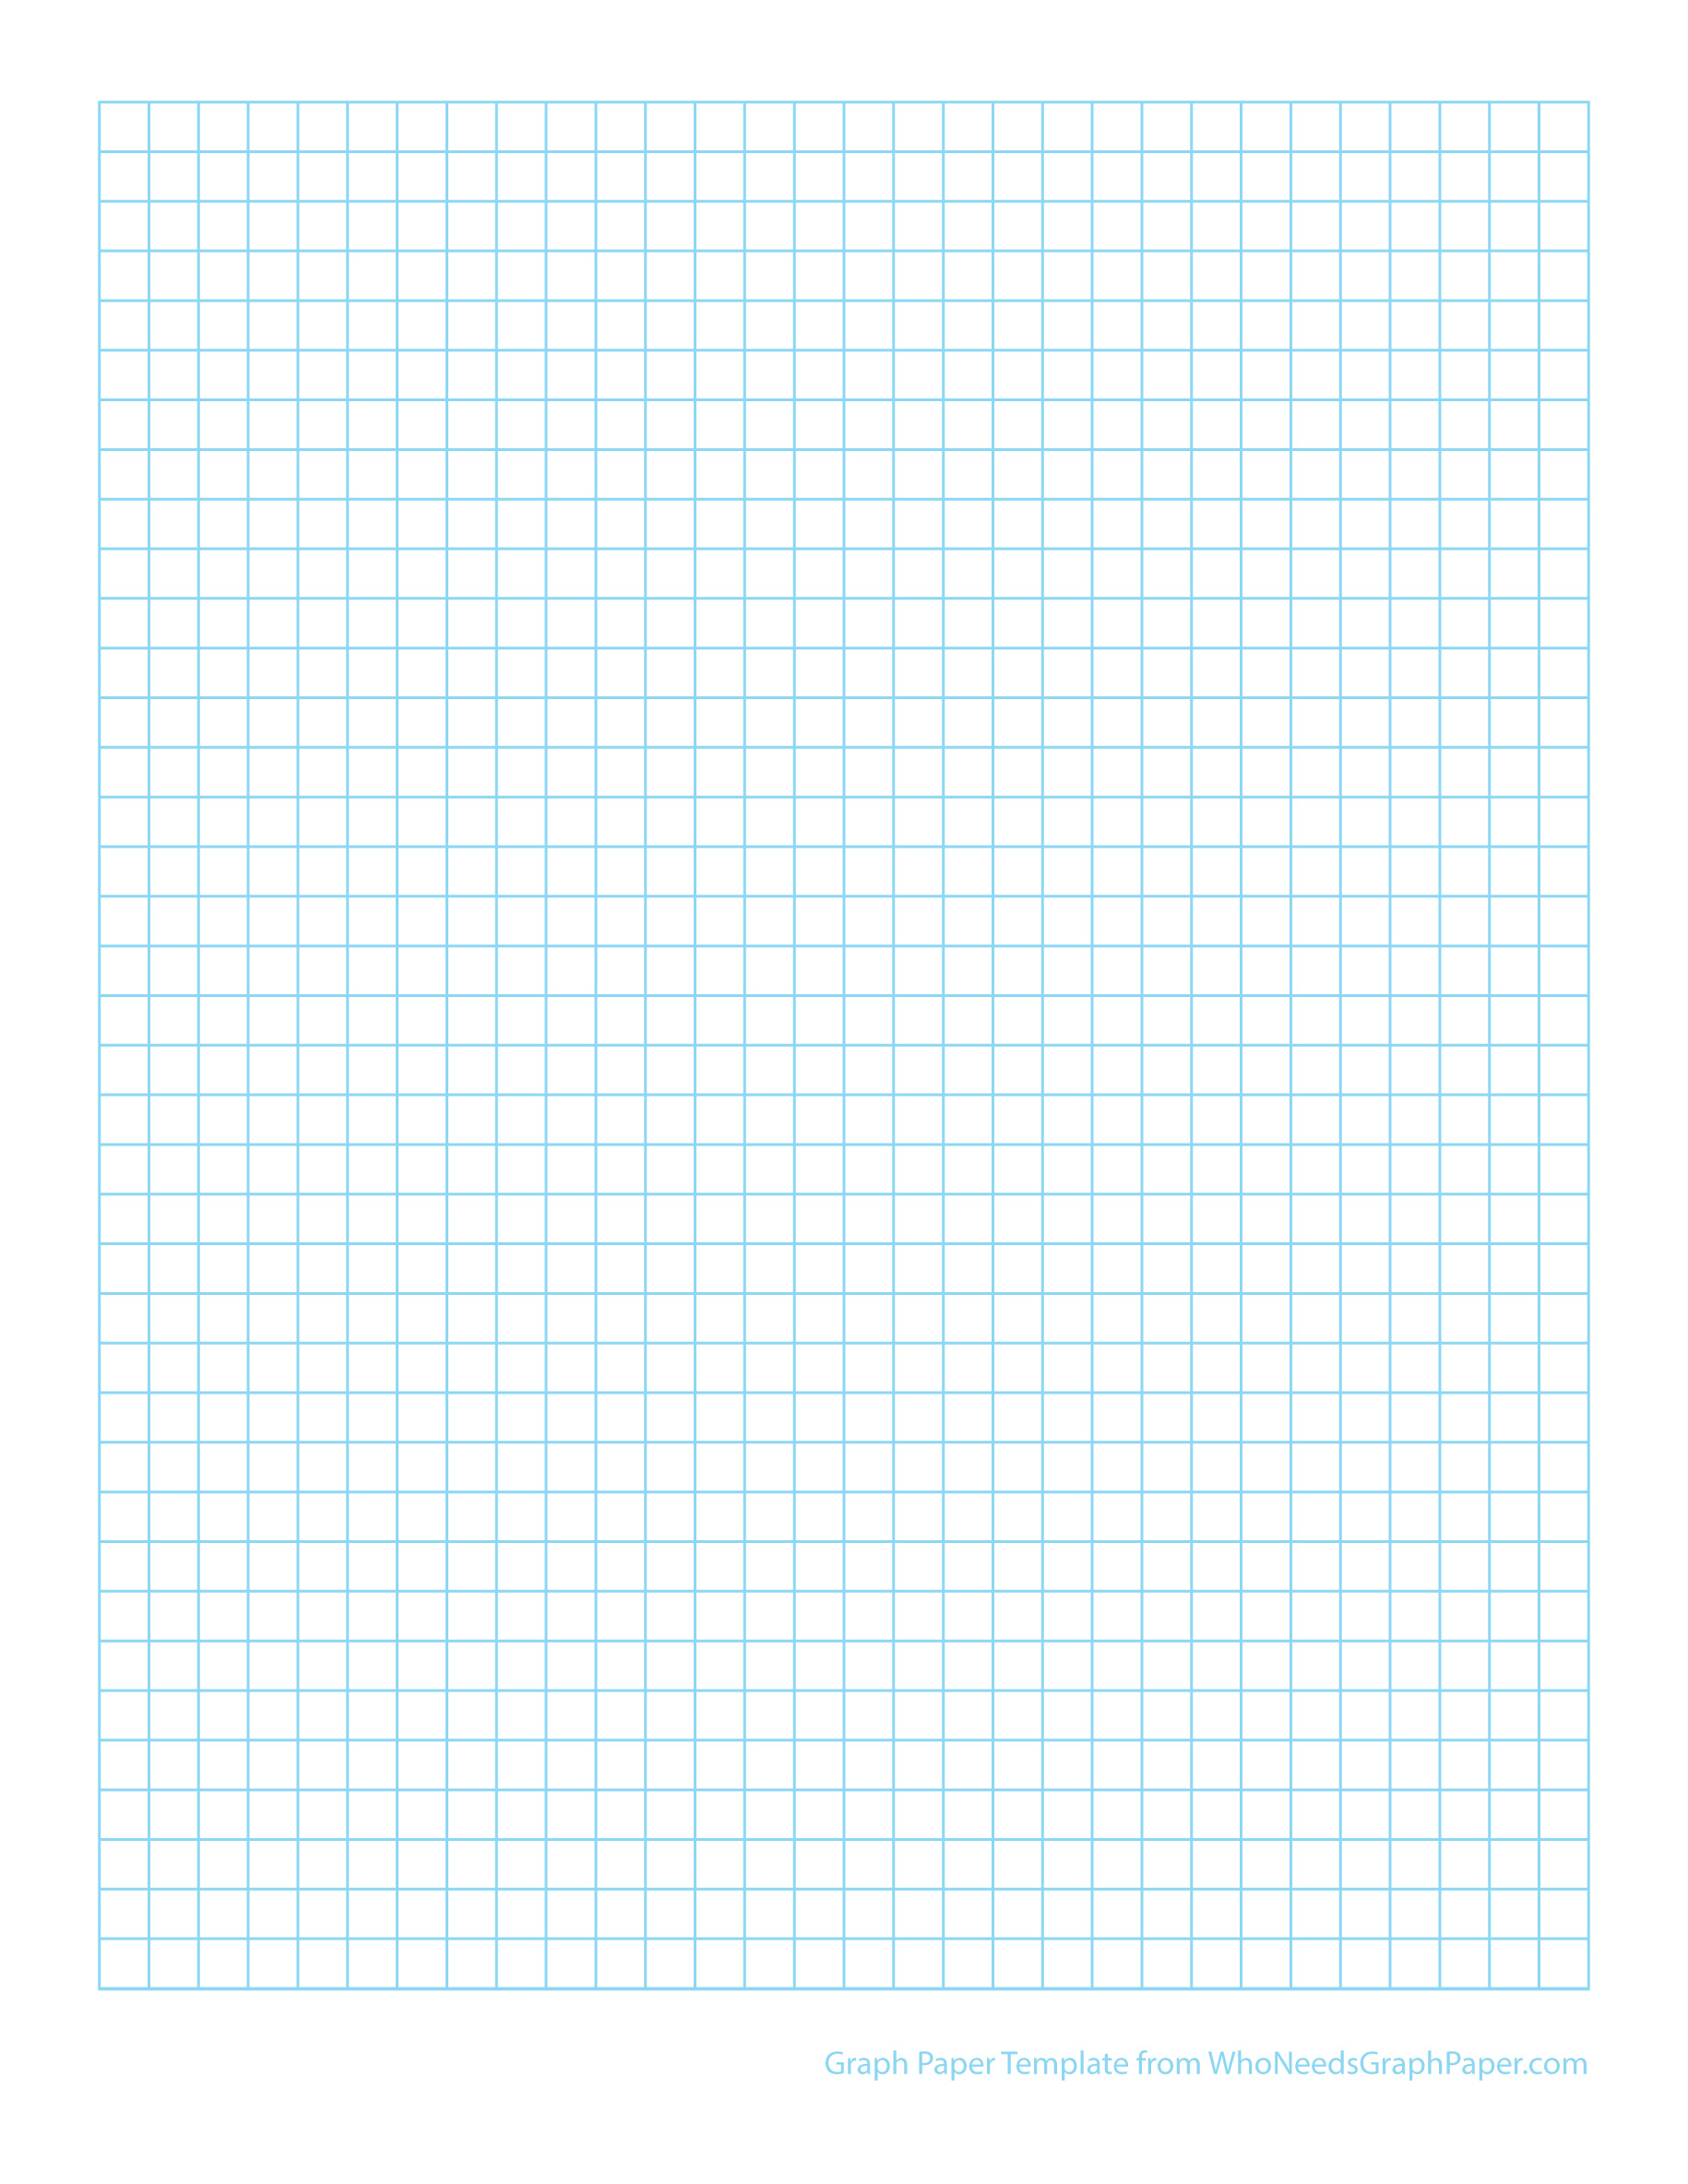 Graph Paper Template Print online selection of printable graph – Engineering Graph Paper Template